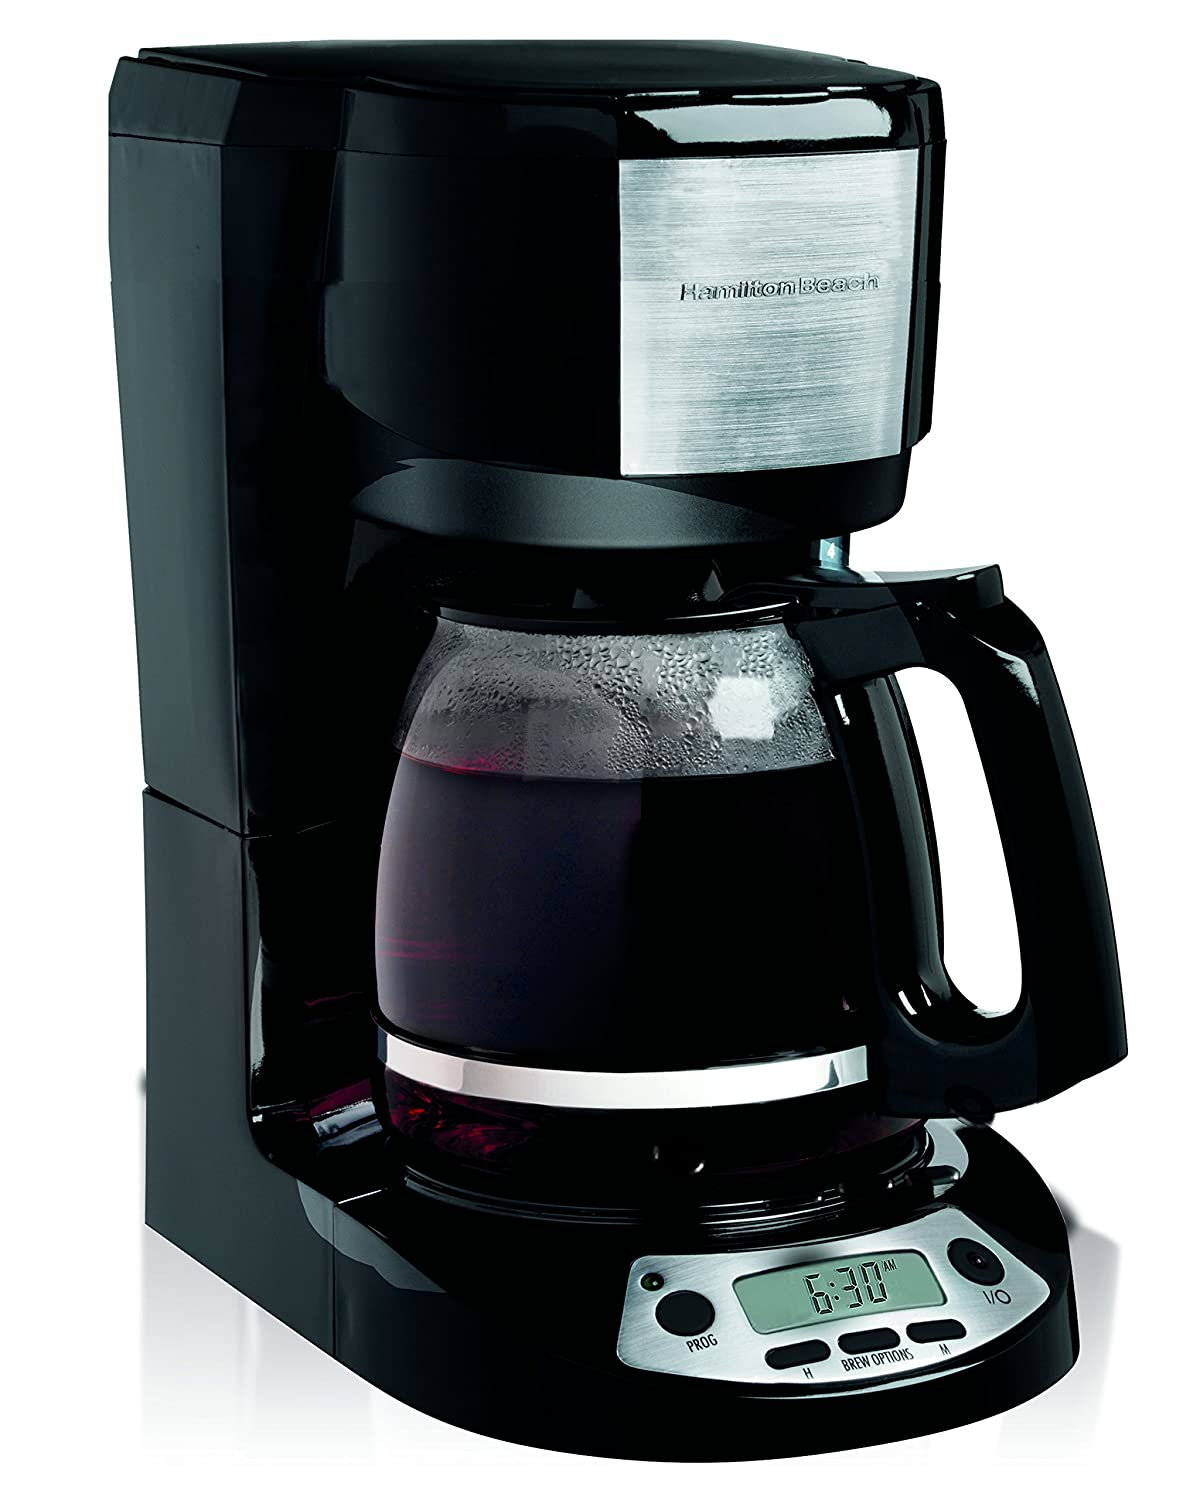 Hamilton Beach 49615C 12 Cup Programmable Coffee Maker Black